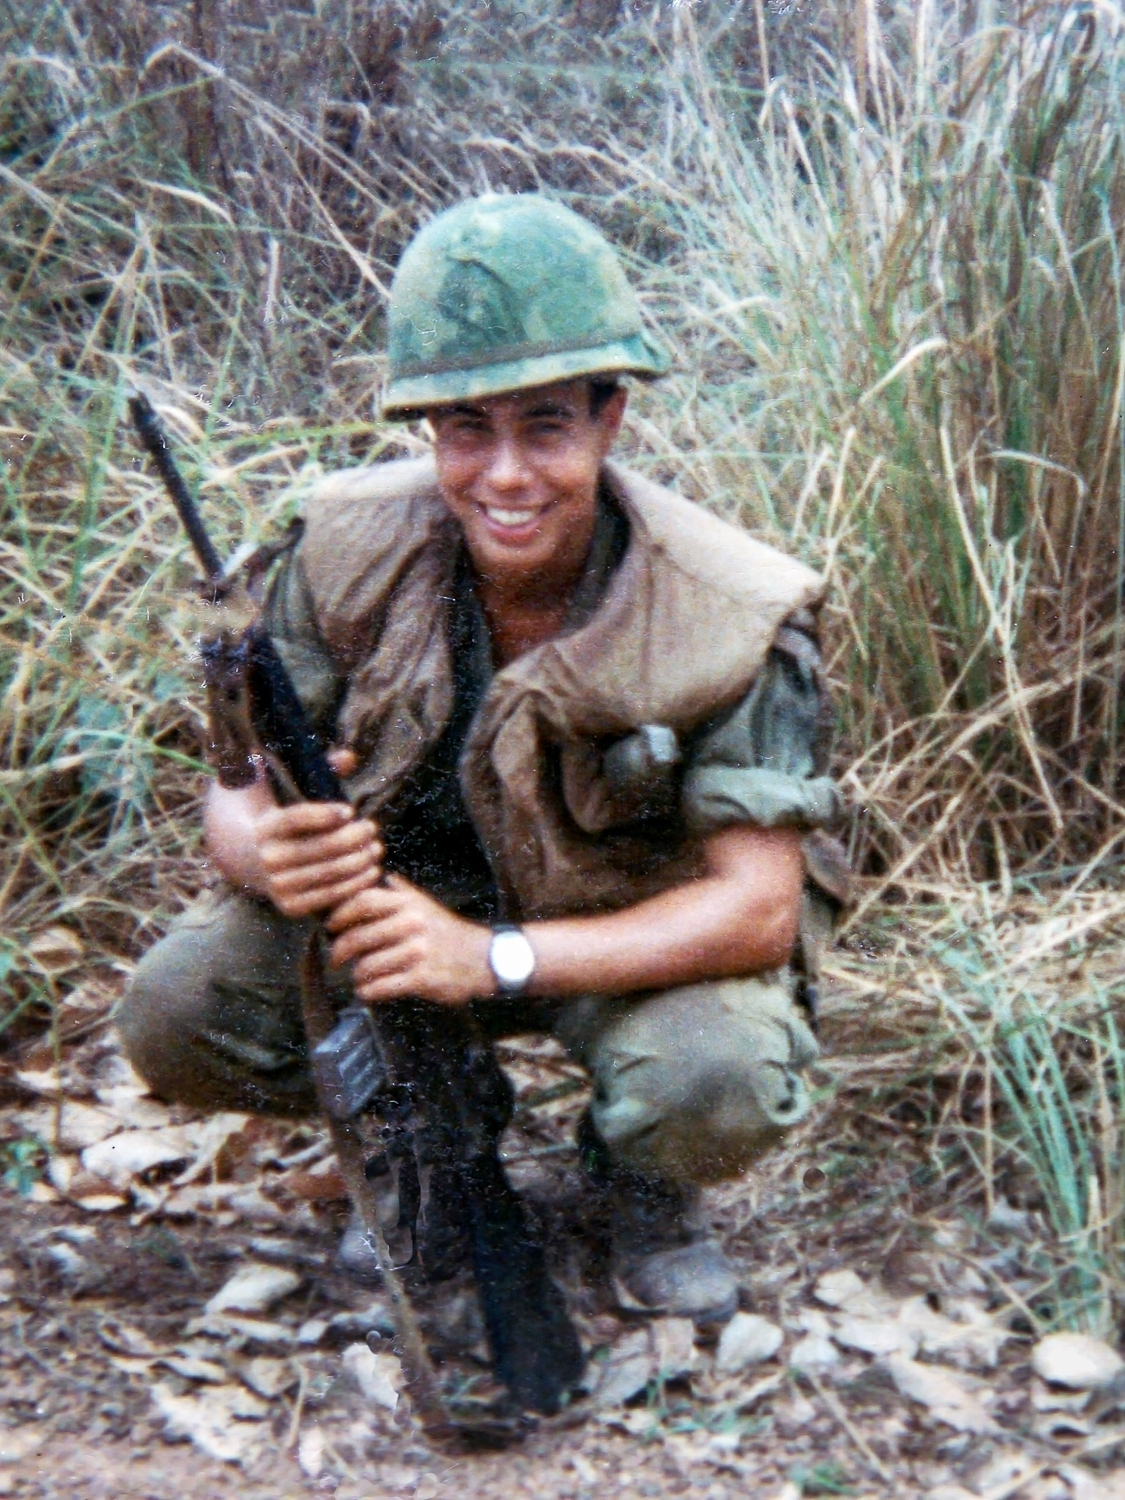 James Polce - Master Sergeant, E-8Active Duty1967-1971; US Army Reserves 1971-200111th Armored Cavalry Regiment; Black Horse Base Camp near Xuan Loc, Vietnam.Medal and Awards:  National Defense Ribbon for Vietnam and Desert Storm; Vietnam Campaign with 6 Oak  Leaf Clusters; Army Commendation Medal; Good Conduct Award; Army Achievement Medal; NCO 3 Medal; Vietnam Service Award.